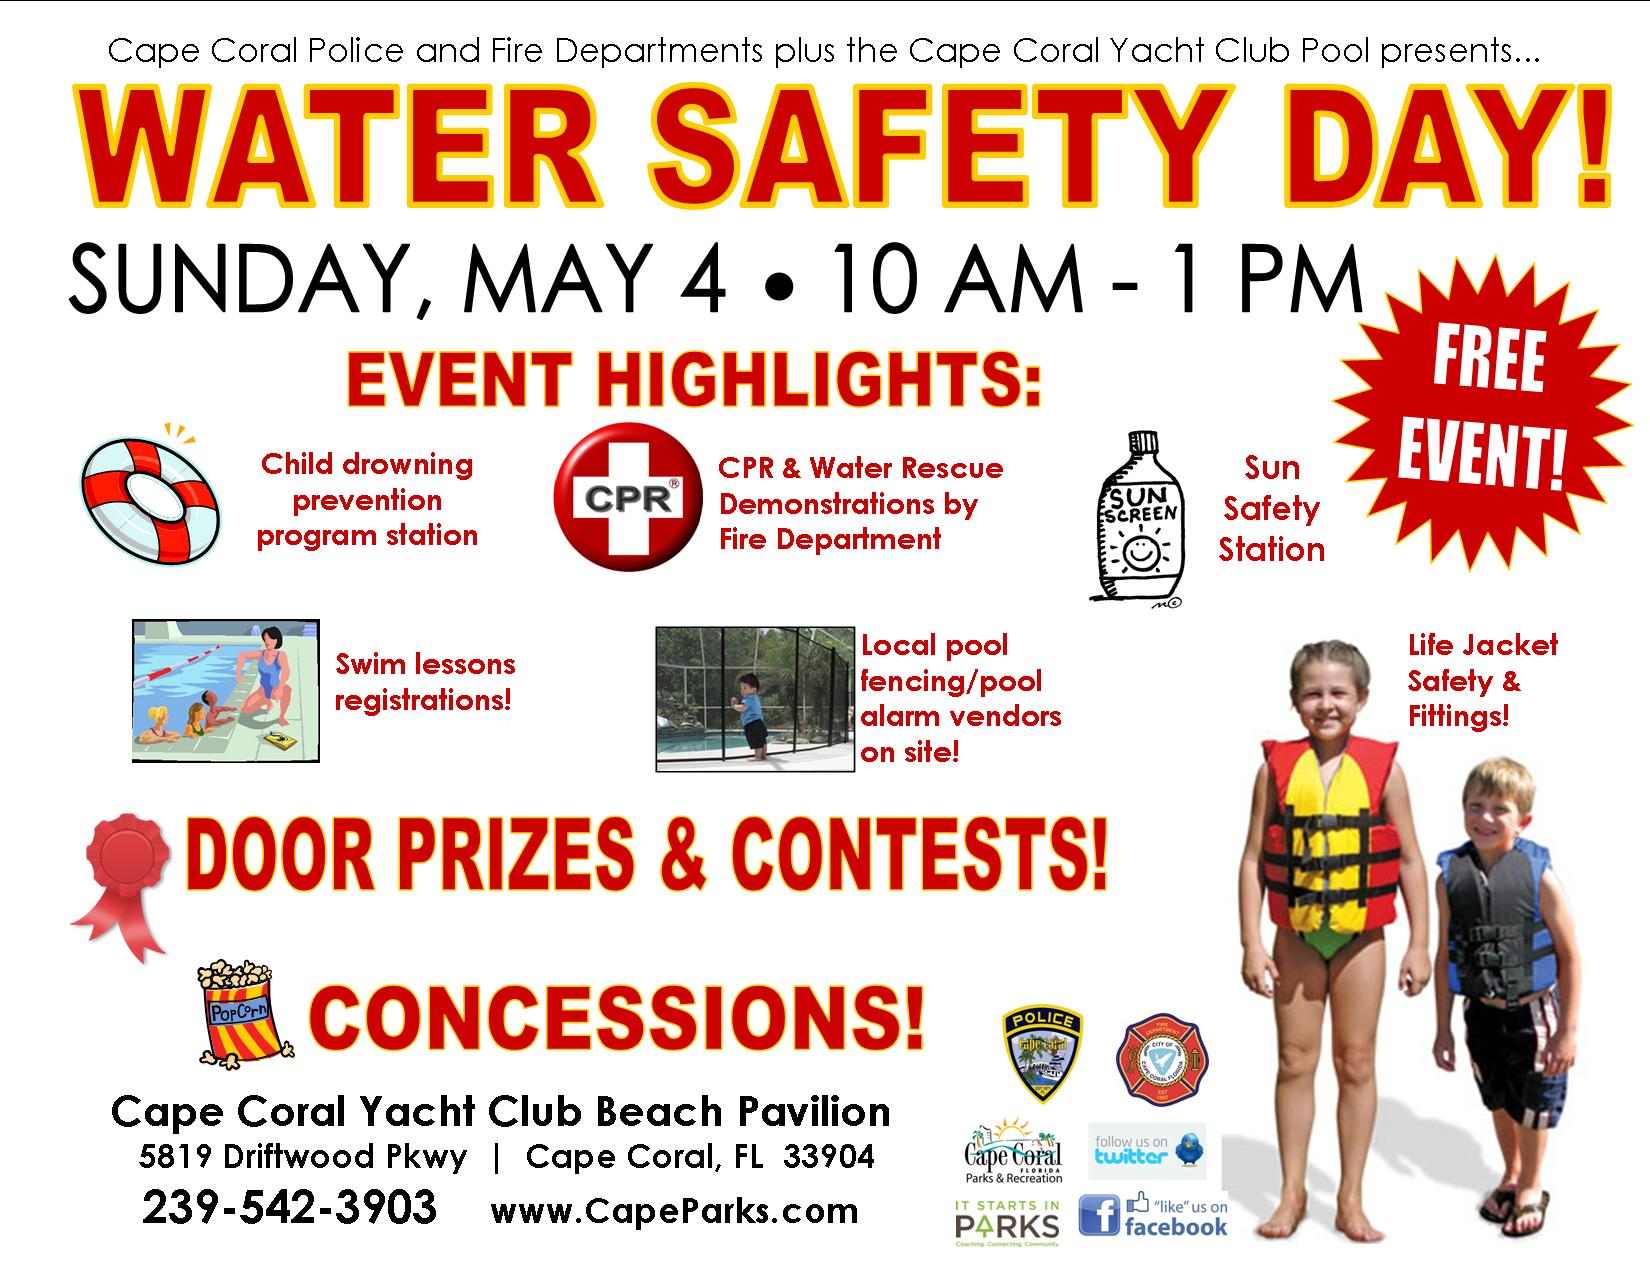 PHOTO: Image of the Water Safety Day Flyer. (Photo Courtesy of Cape Coral Police Department)